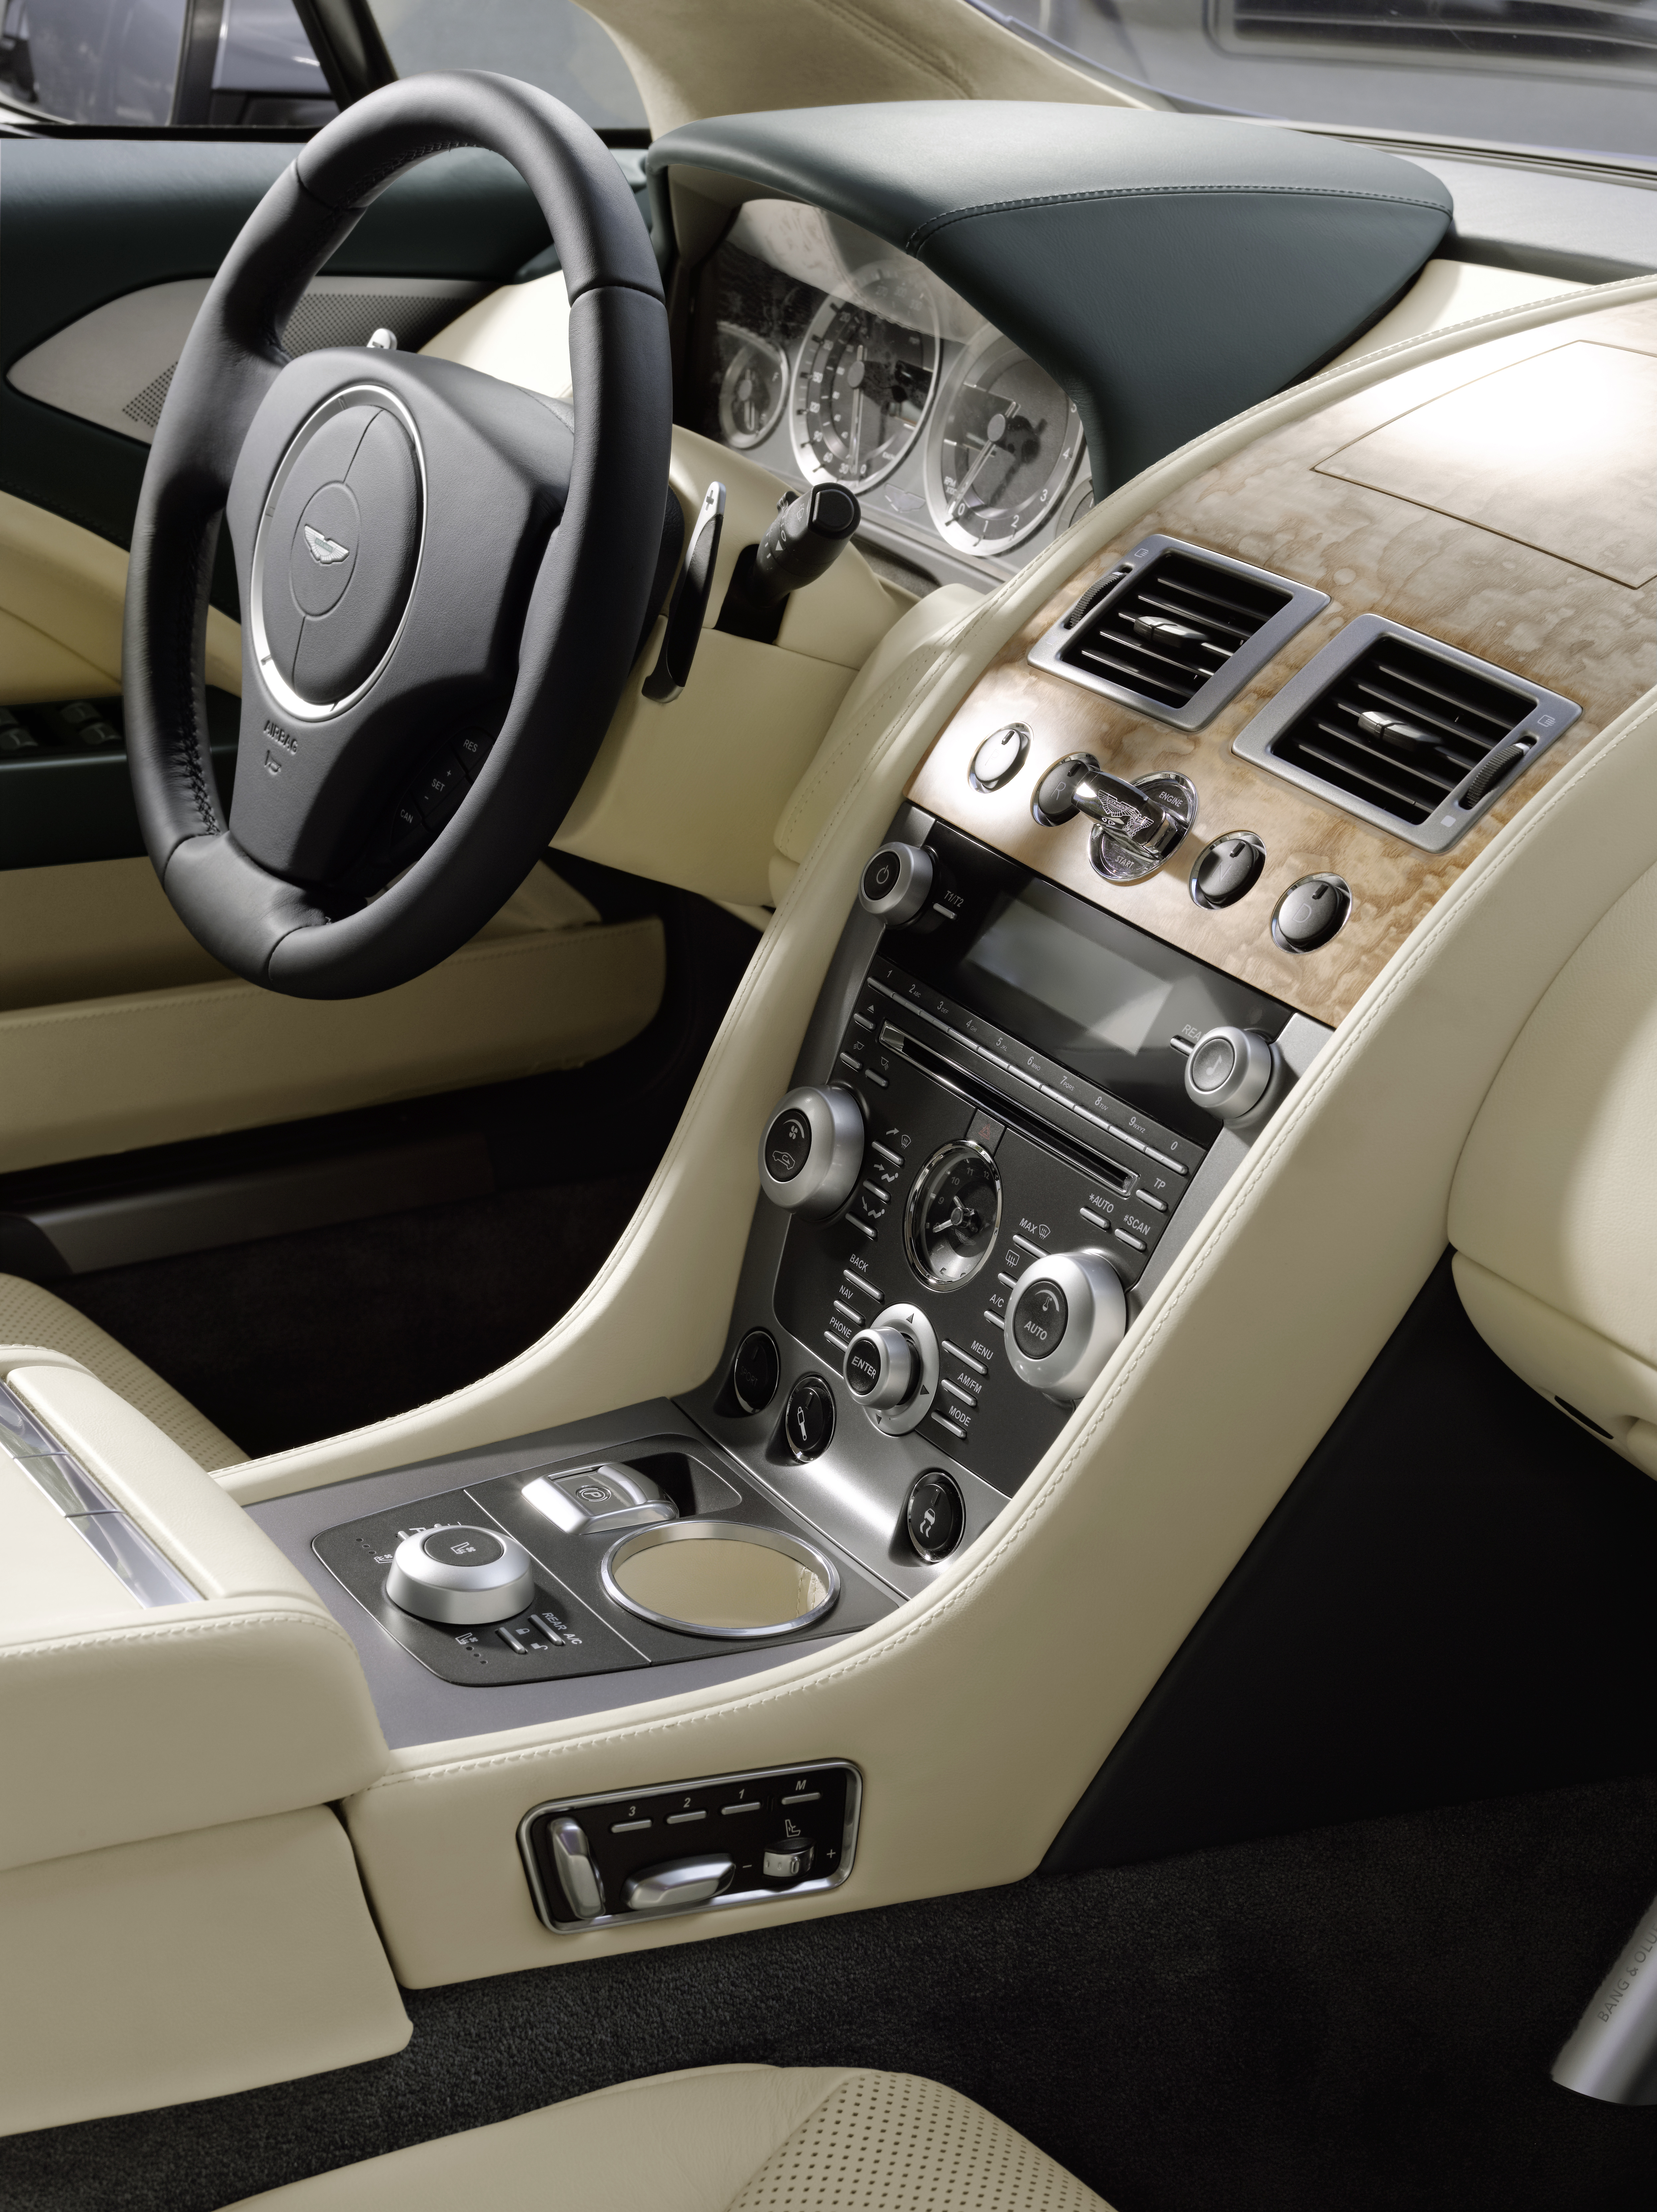 Aston Martin Rapide In besides Acura Tl Wiring Diagram Automatic Dimming Mirror V X also Mini Cooper Clubman Main Fuse Box Map further Acura Tl Wiring Diagram Rear Window Defogger X in addition D Electric Fuel Pump Inertia Switch Spider Relay Inertia Done. on alfa romeo spider wiring diagram